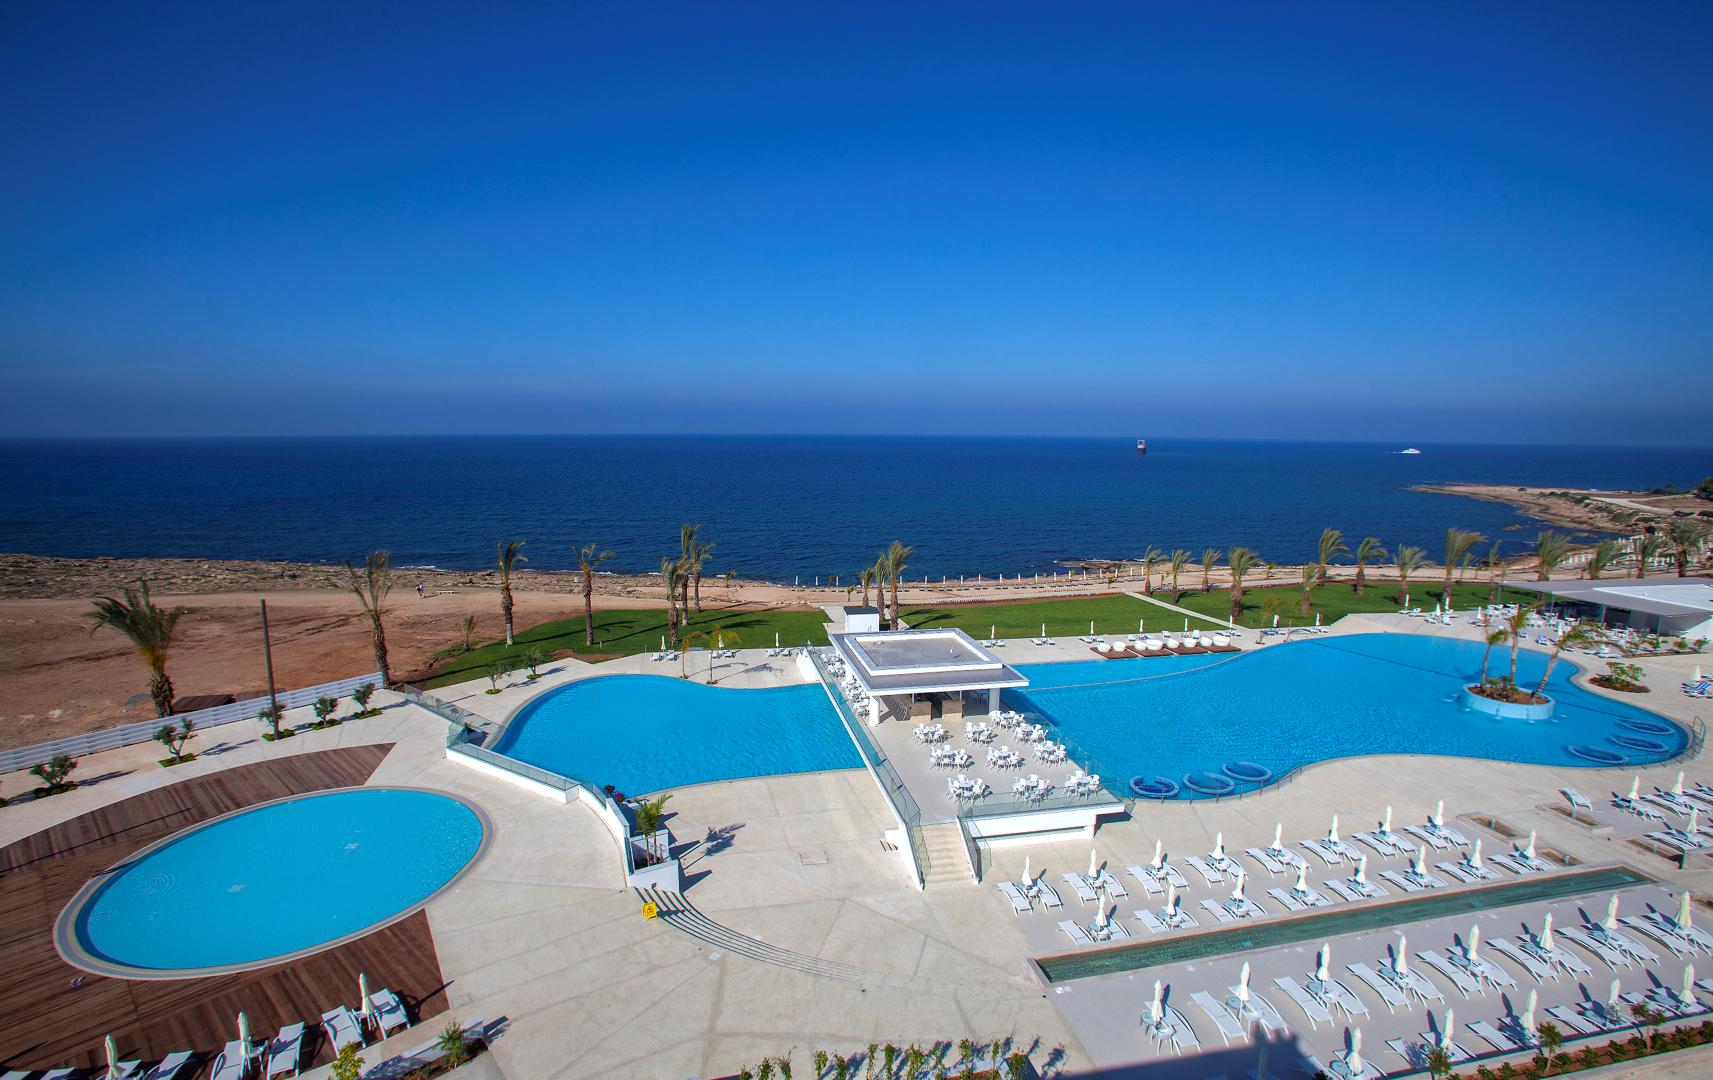 Tsokkos King Evelthon Beach Hotel & Resort